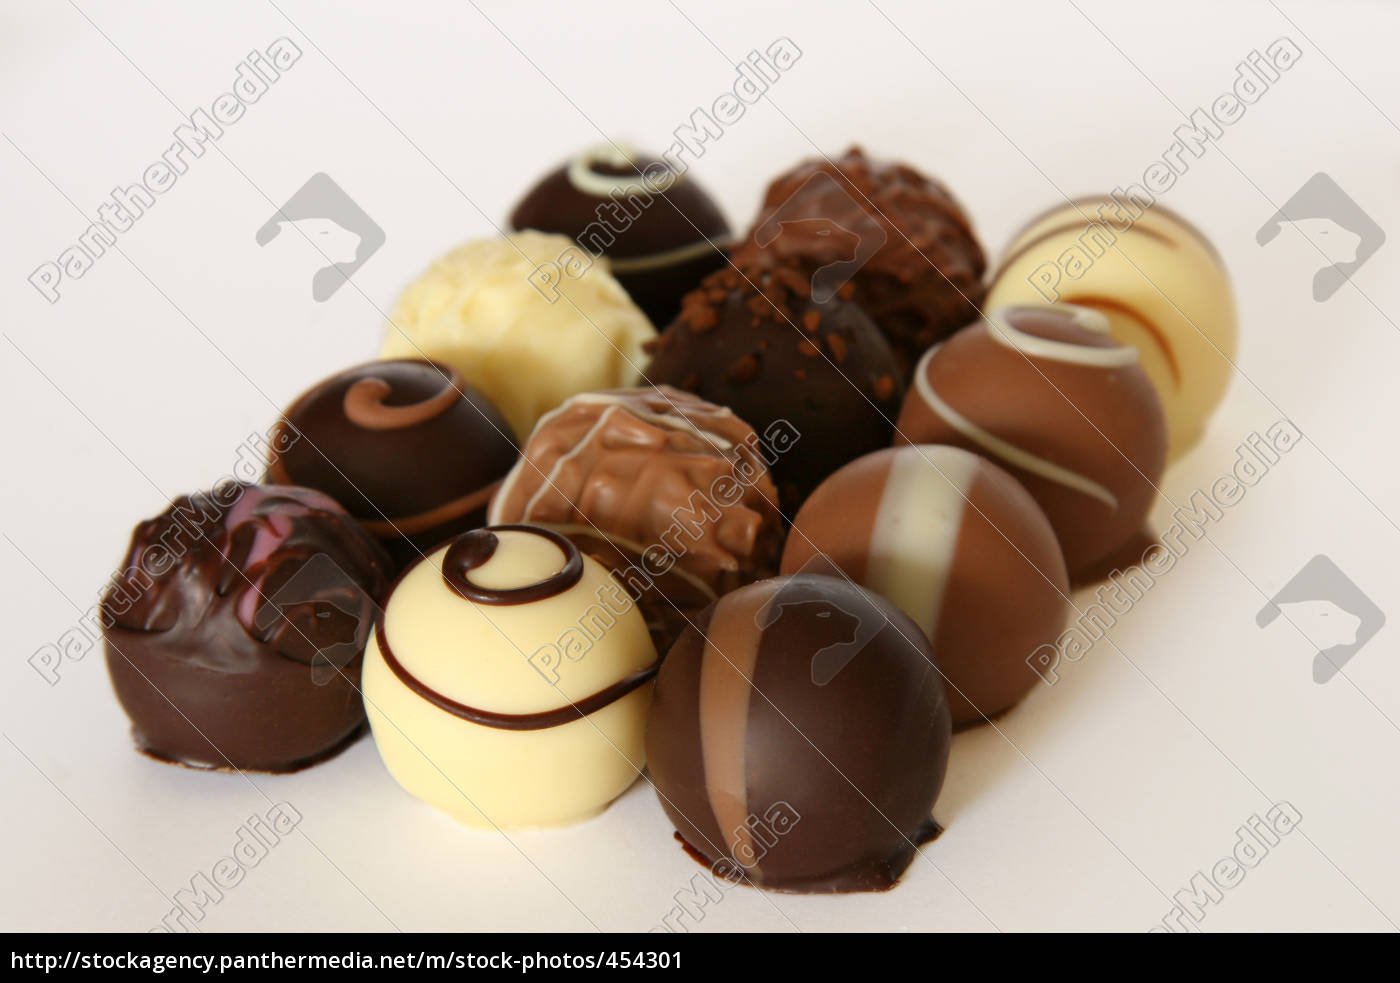 chocolates, temptation - 454301